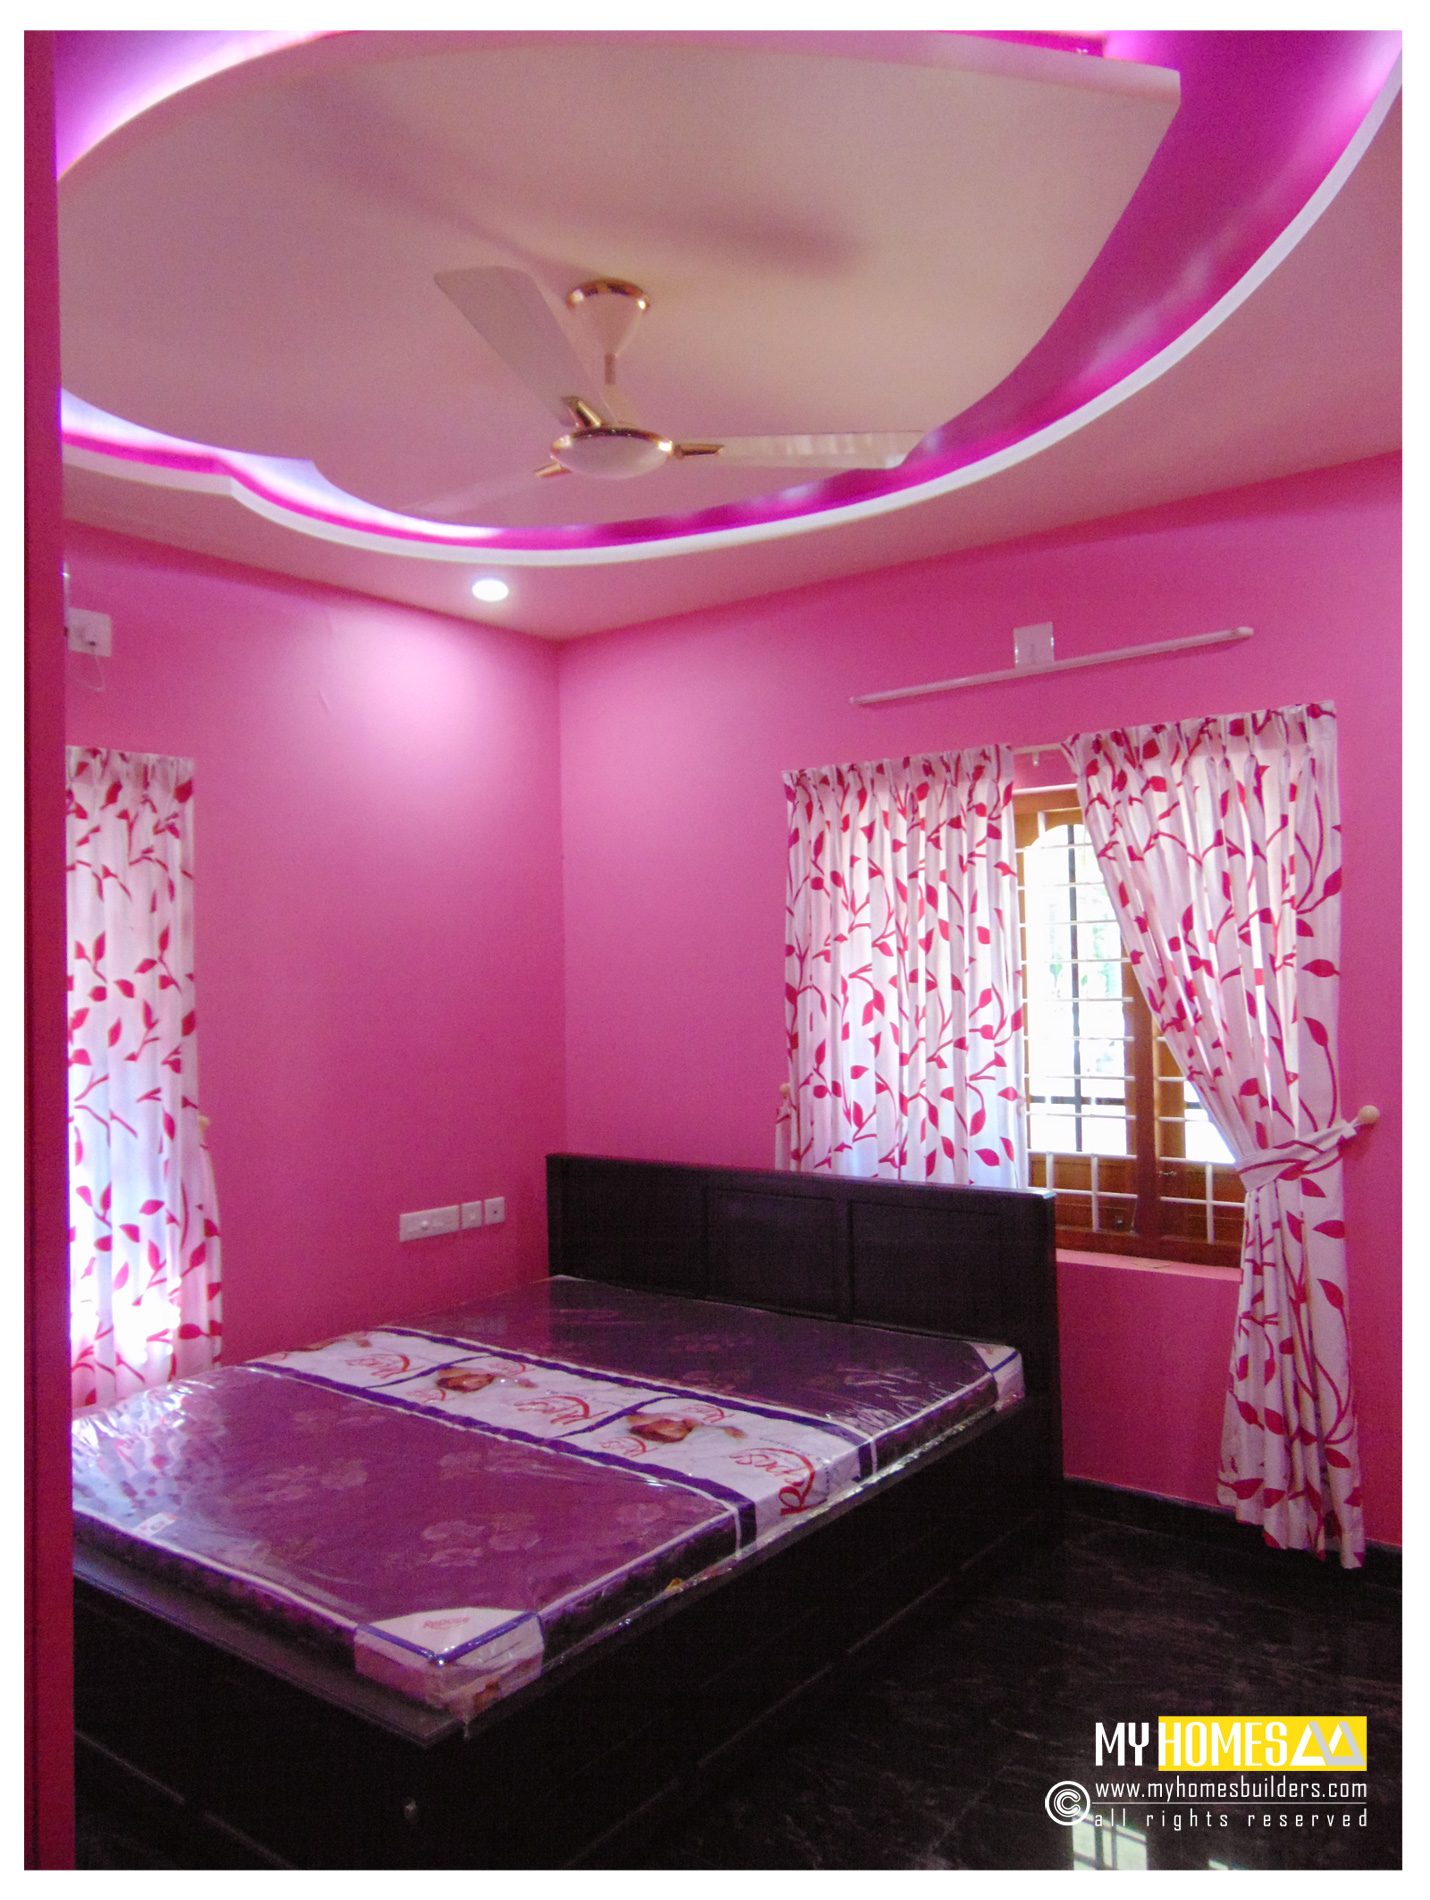 Simple style kerala bedroom designs ideas for home interior for Interior designs for bedrooms ideas